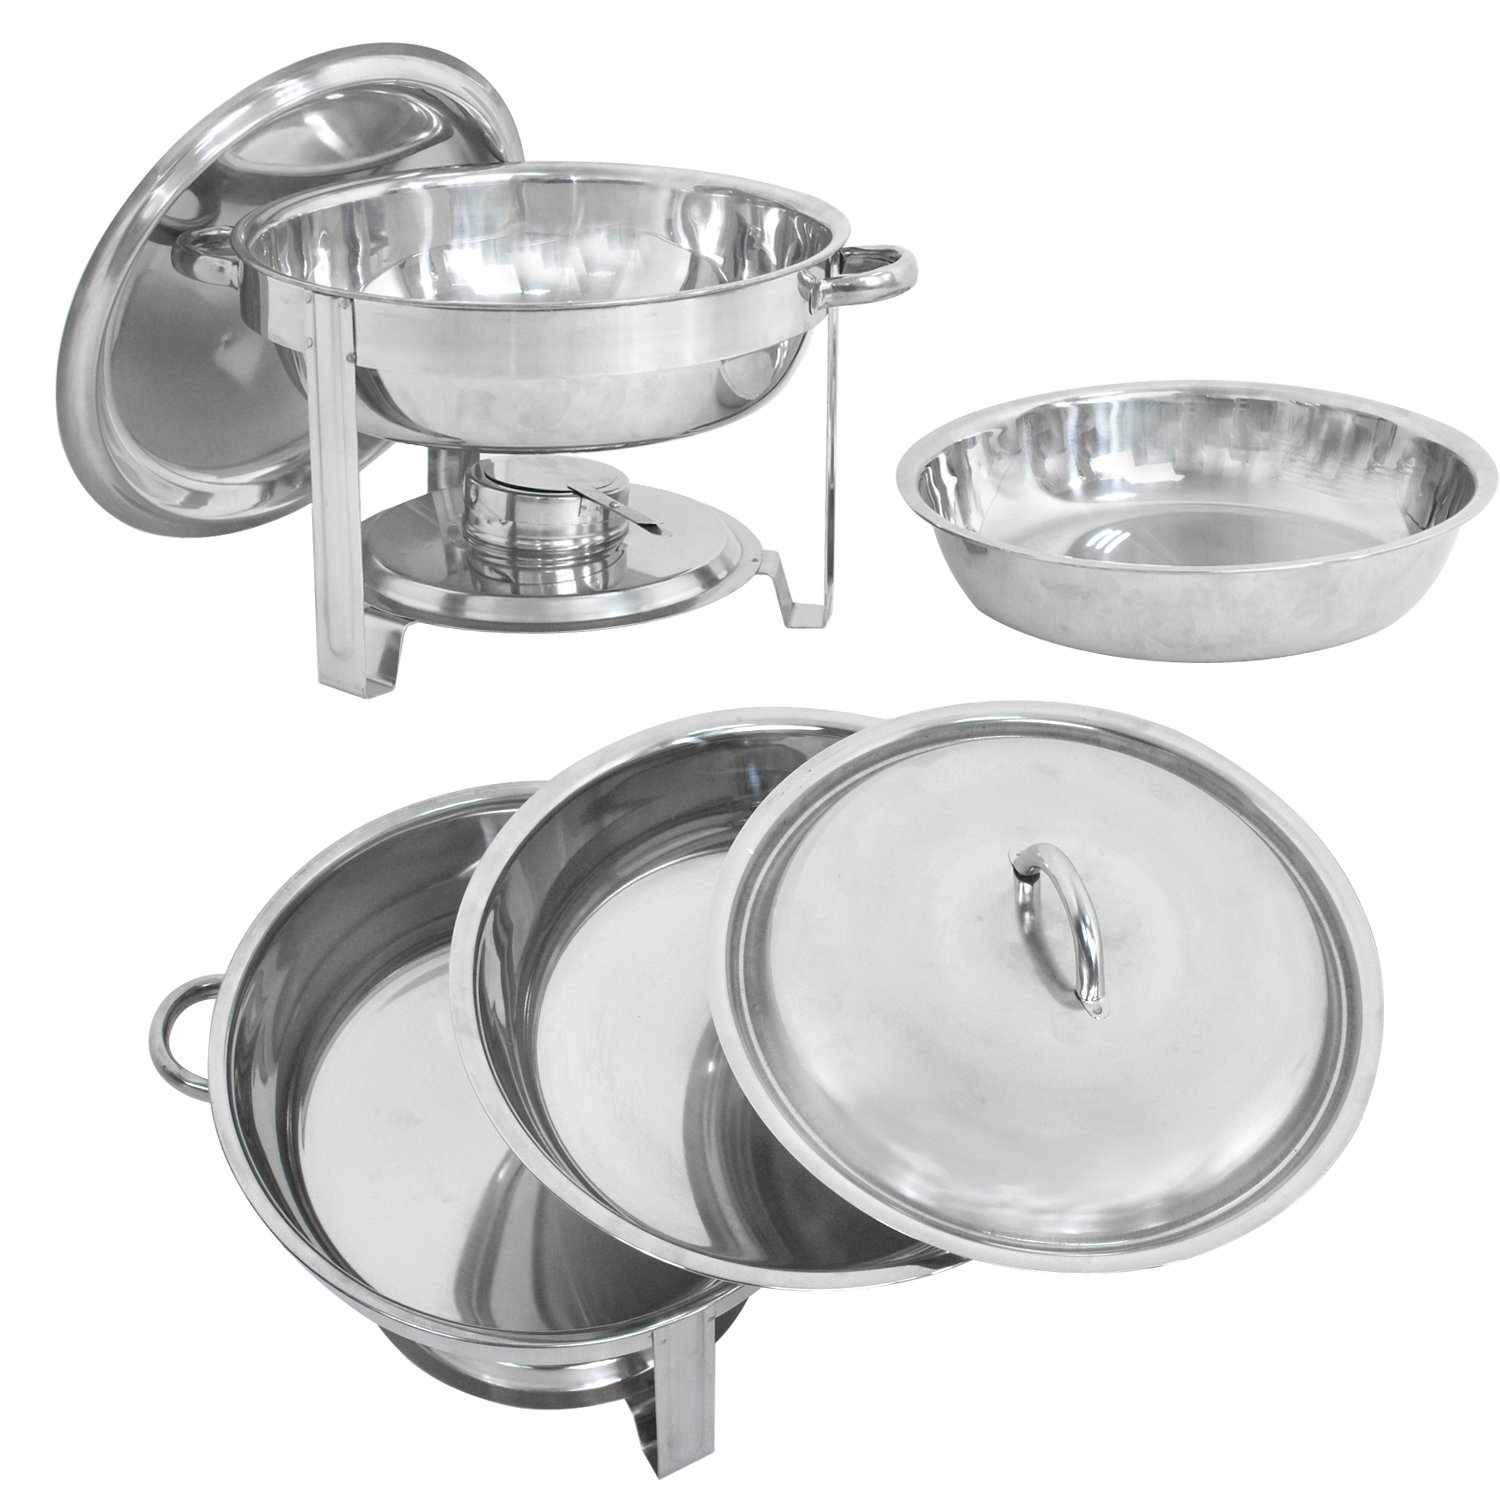 2 Deluxe Stainless Steel Chafing Dish Round Chafer with Lid 5 Quart,Dinner Serving Warmer Full Size